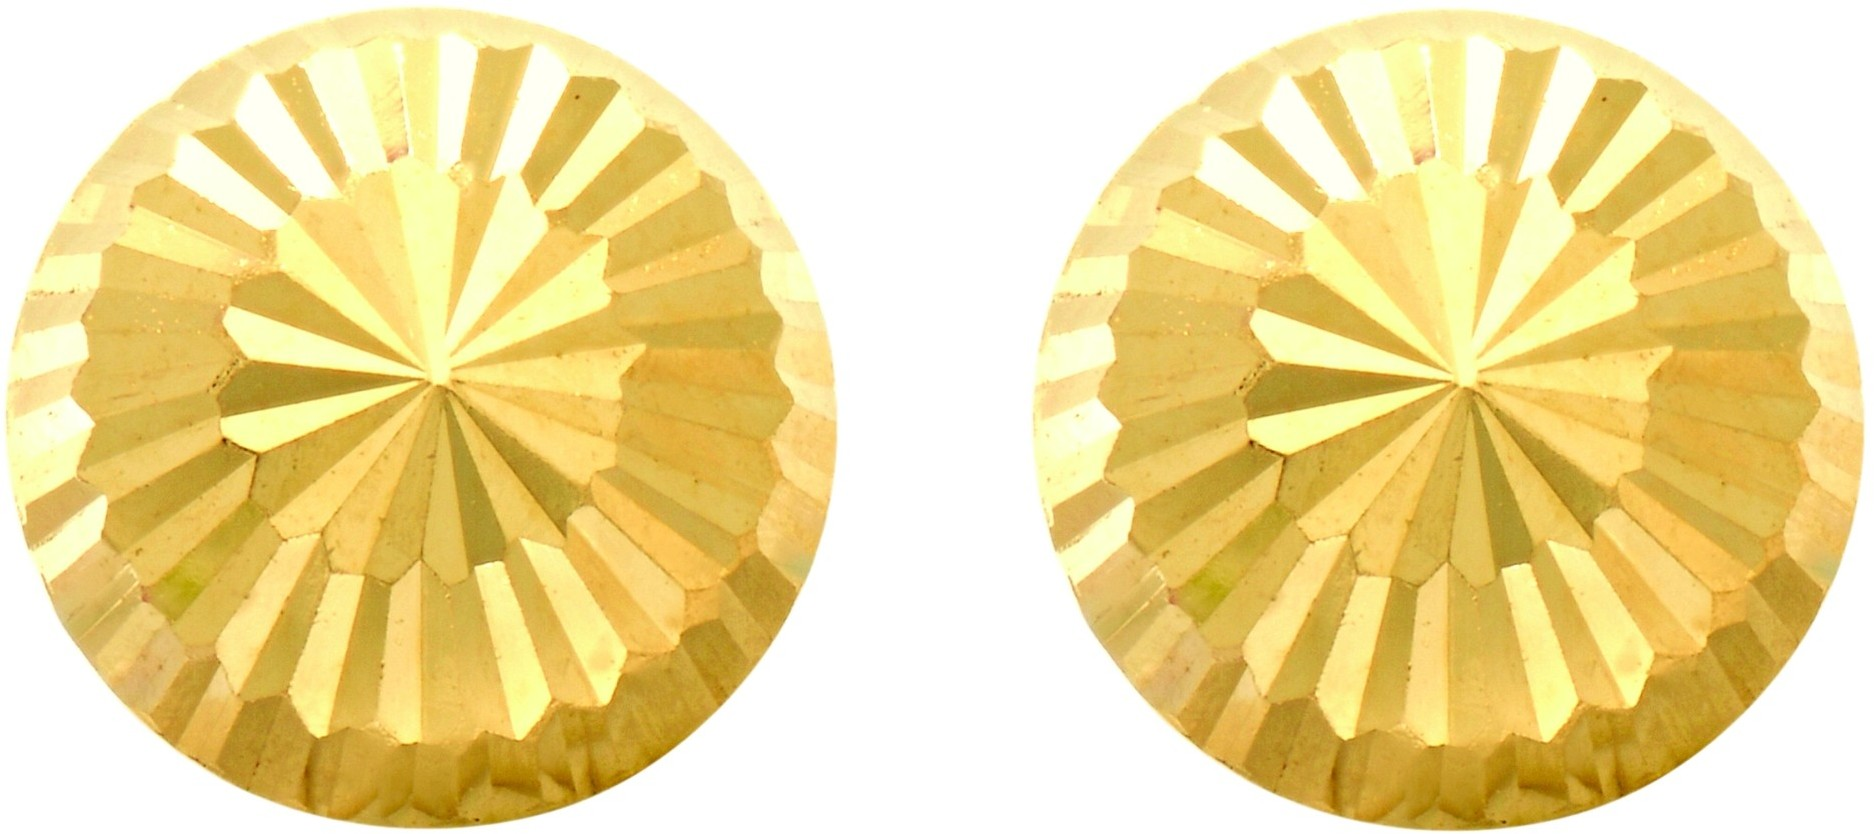 "14K Yellow Gold 8.0mm (1/3"") Shiny Diamond Cut Stud Earrings"